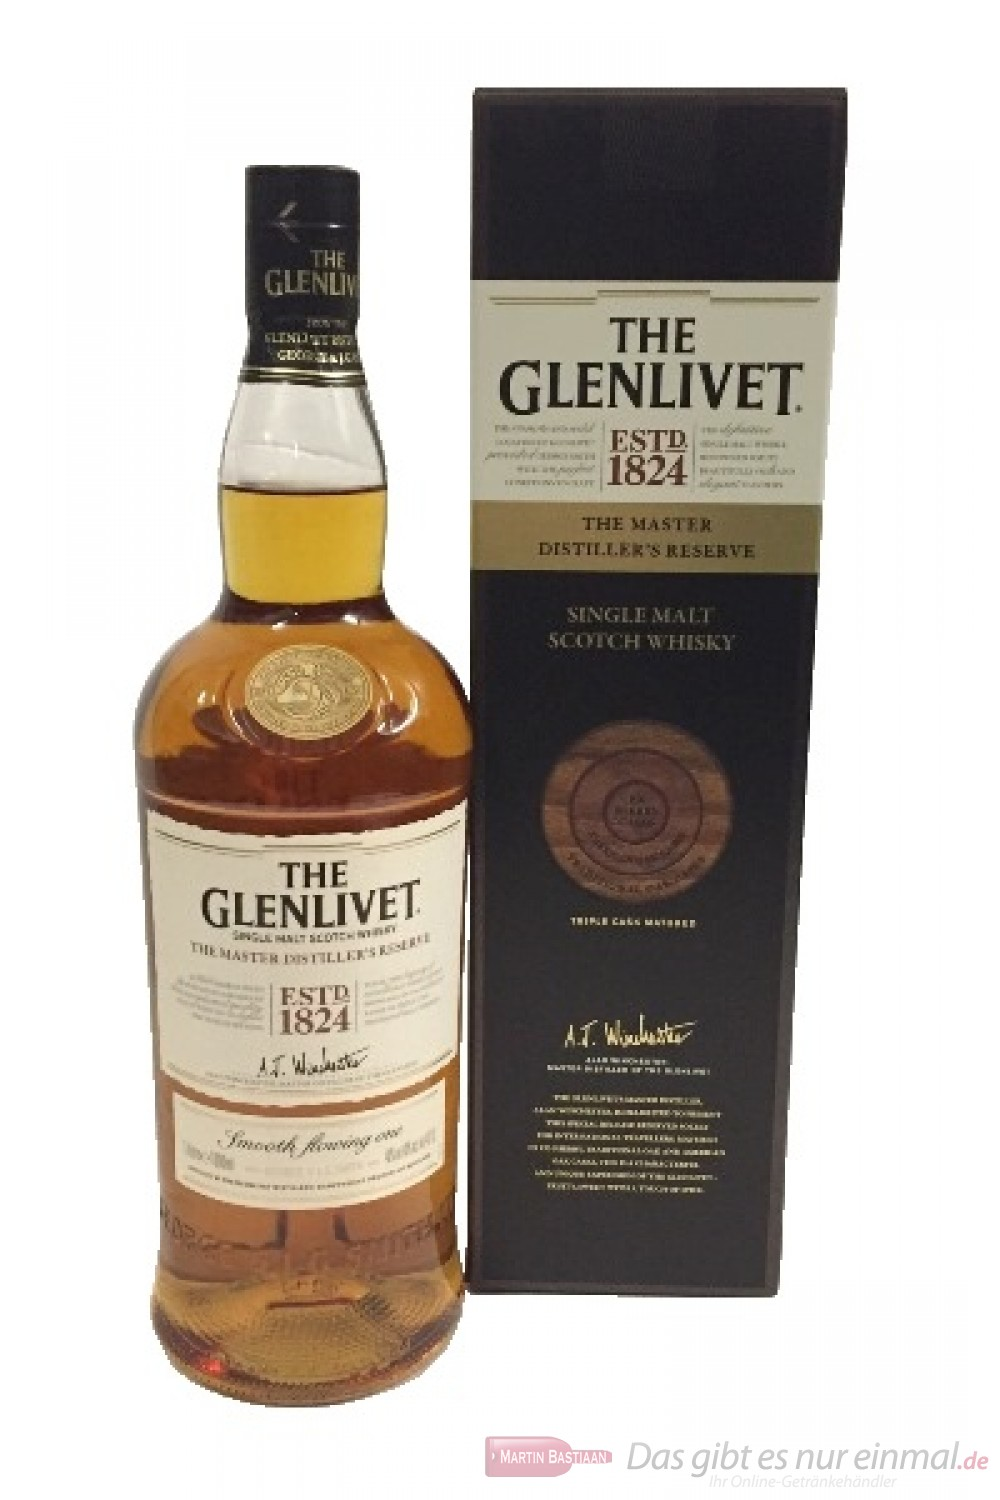 The Glenlivet Master Distiller's Reserve